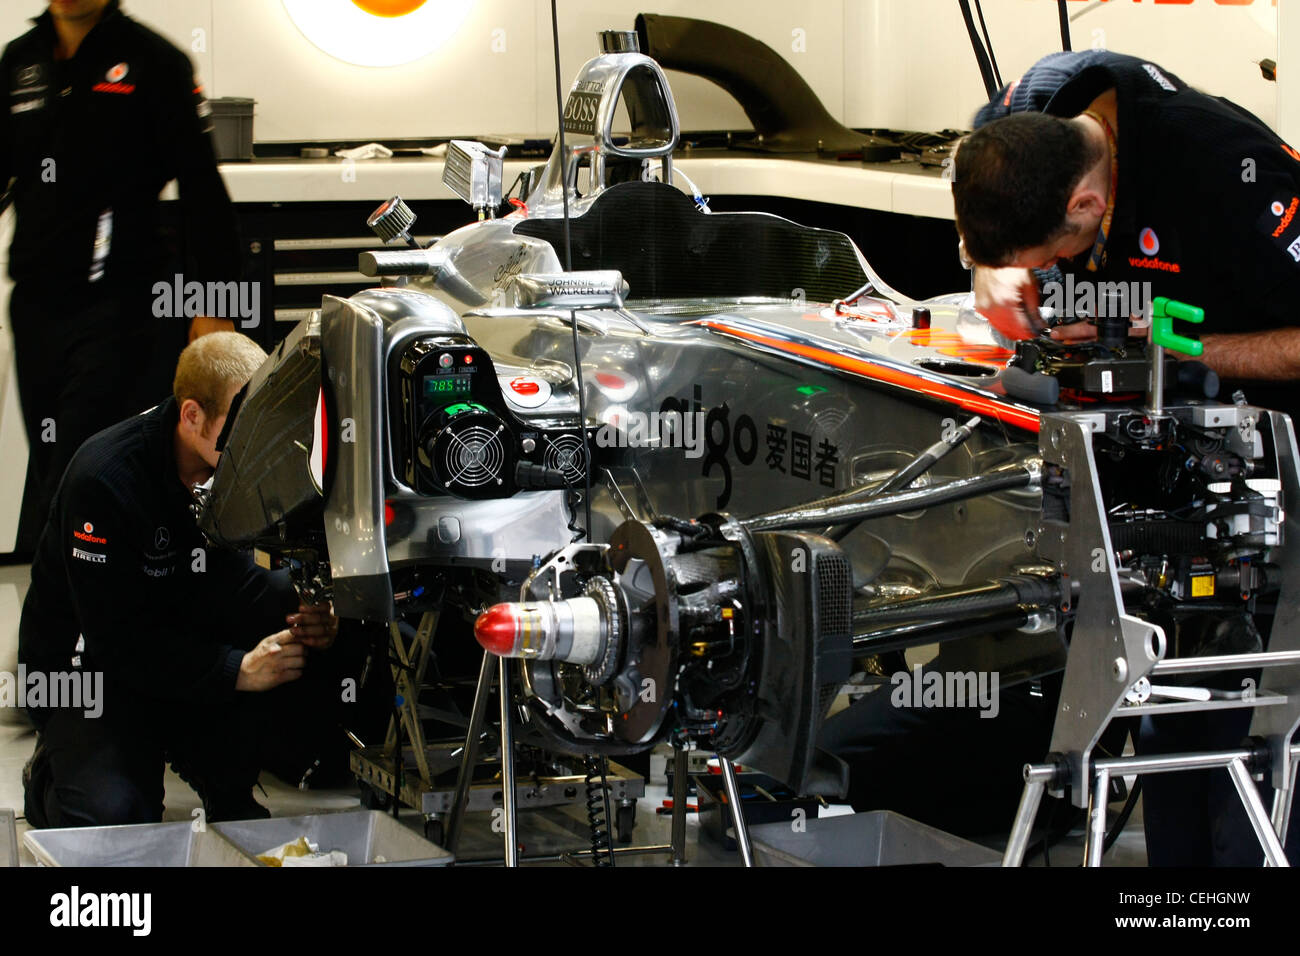 Mclaren F1 team at the Silverstone GP - Stock Image